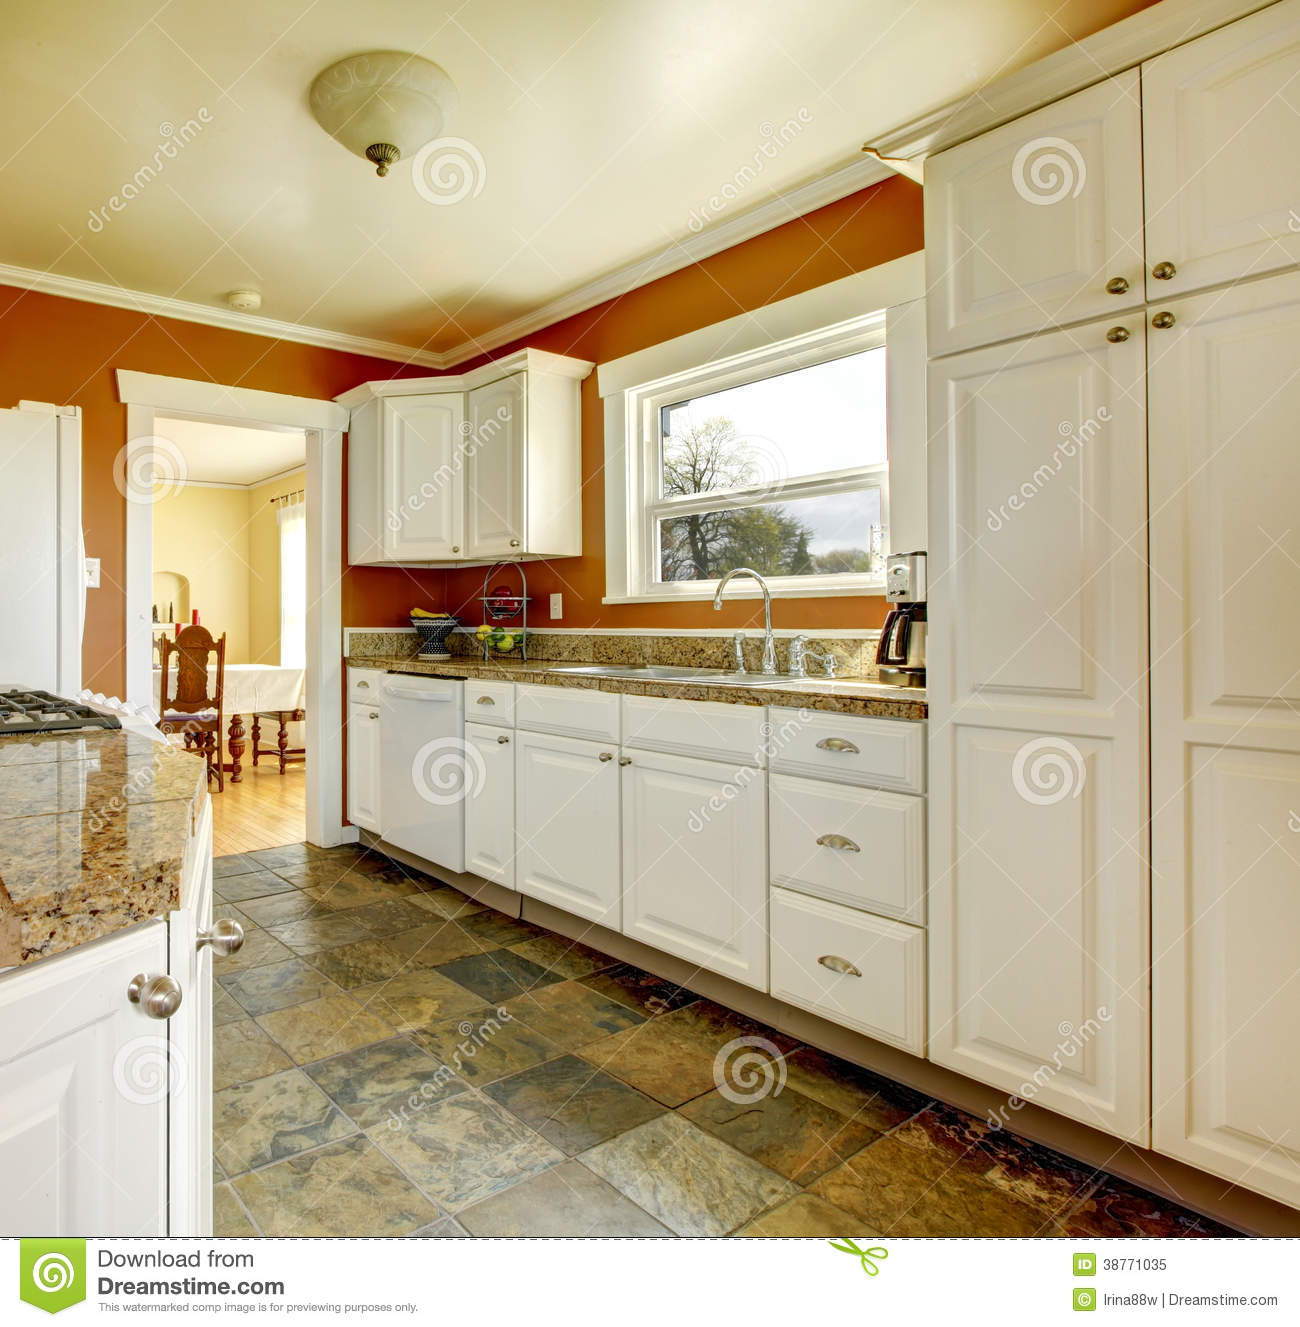 Orange Kitchen Room With White Cabinets Stock Image: Orange Kitchen Room With White Cabinets Stock Image